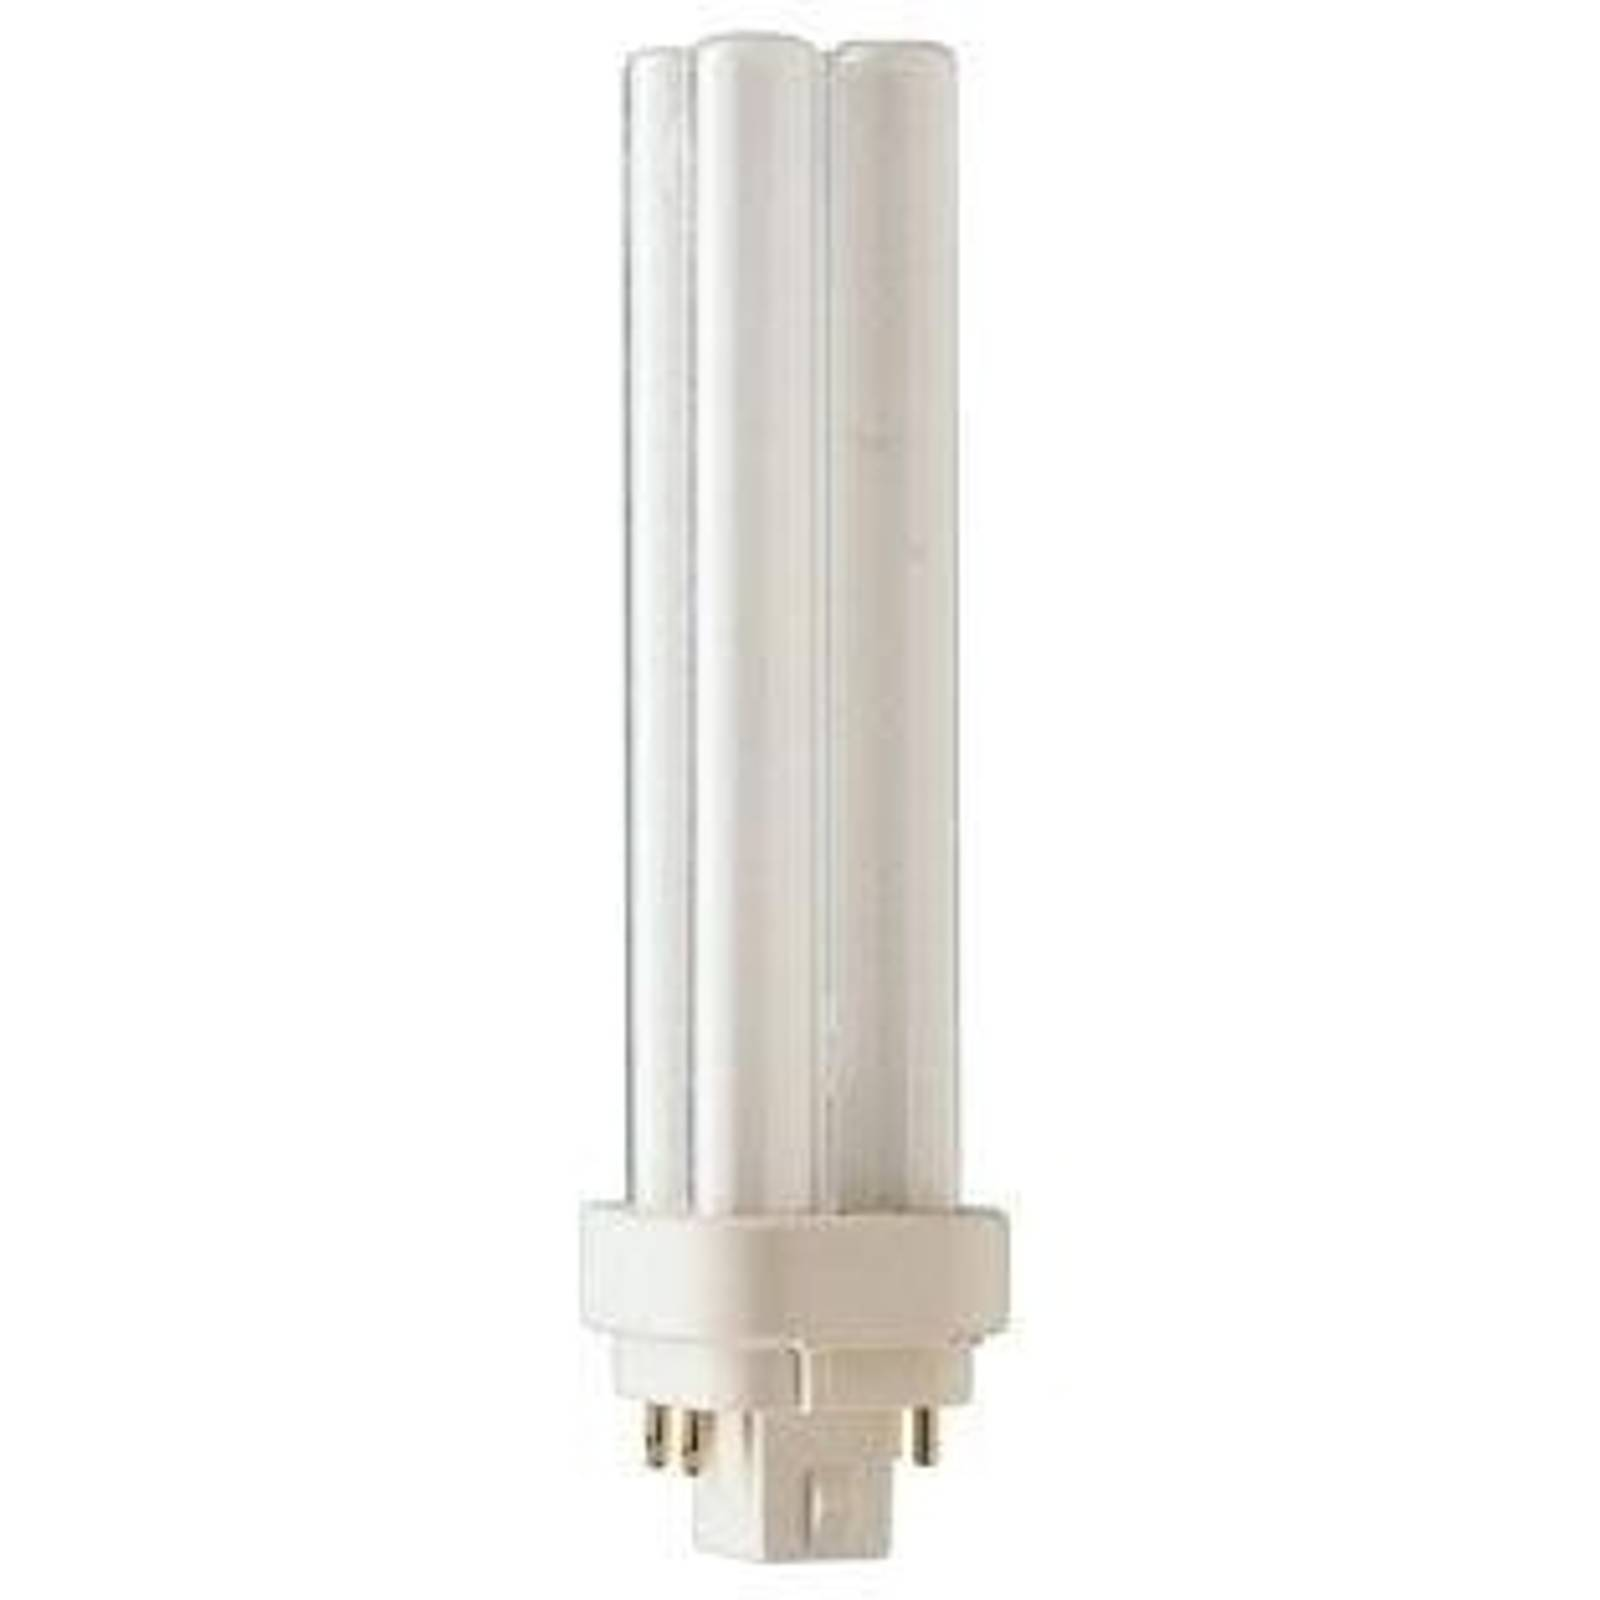 G24q compact fluorescent bulb Master PL-C 4Pin from Philips